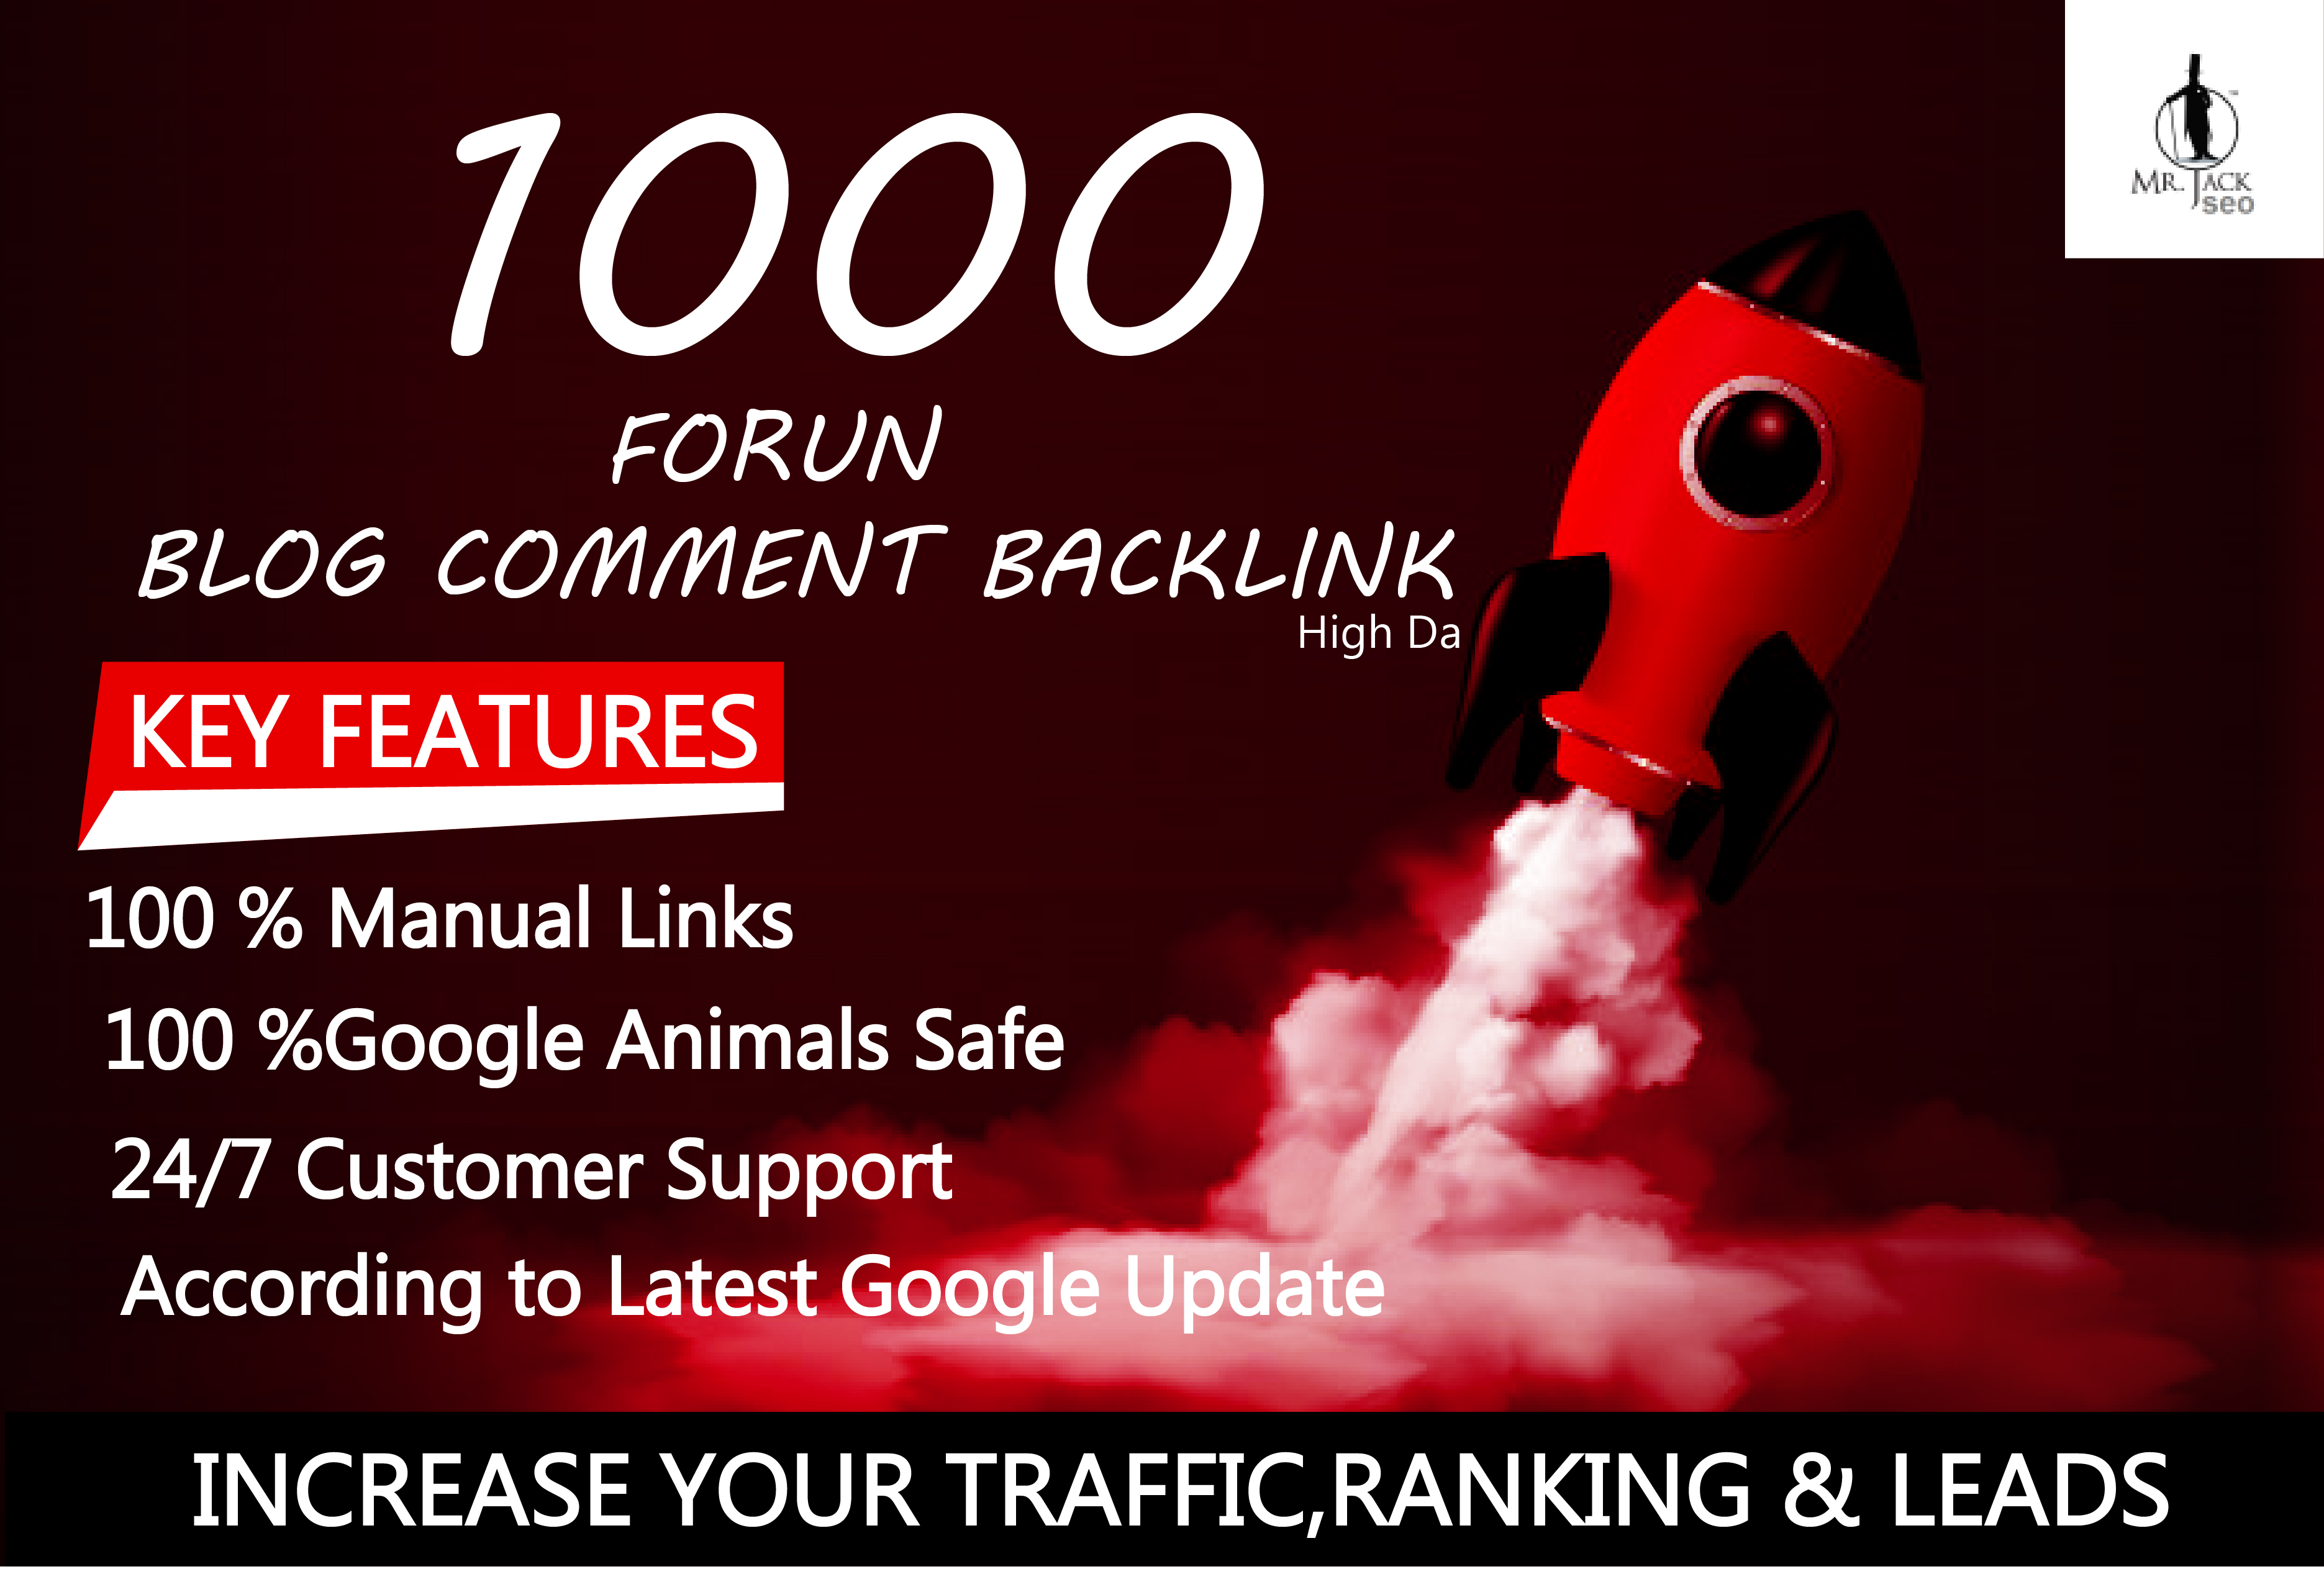 1000 forum Blog Comment Backlinks High DA